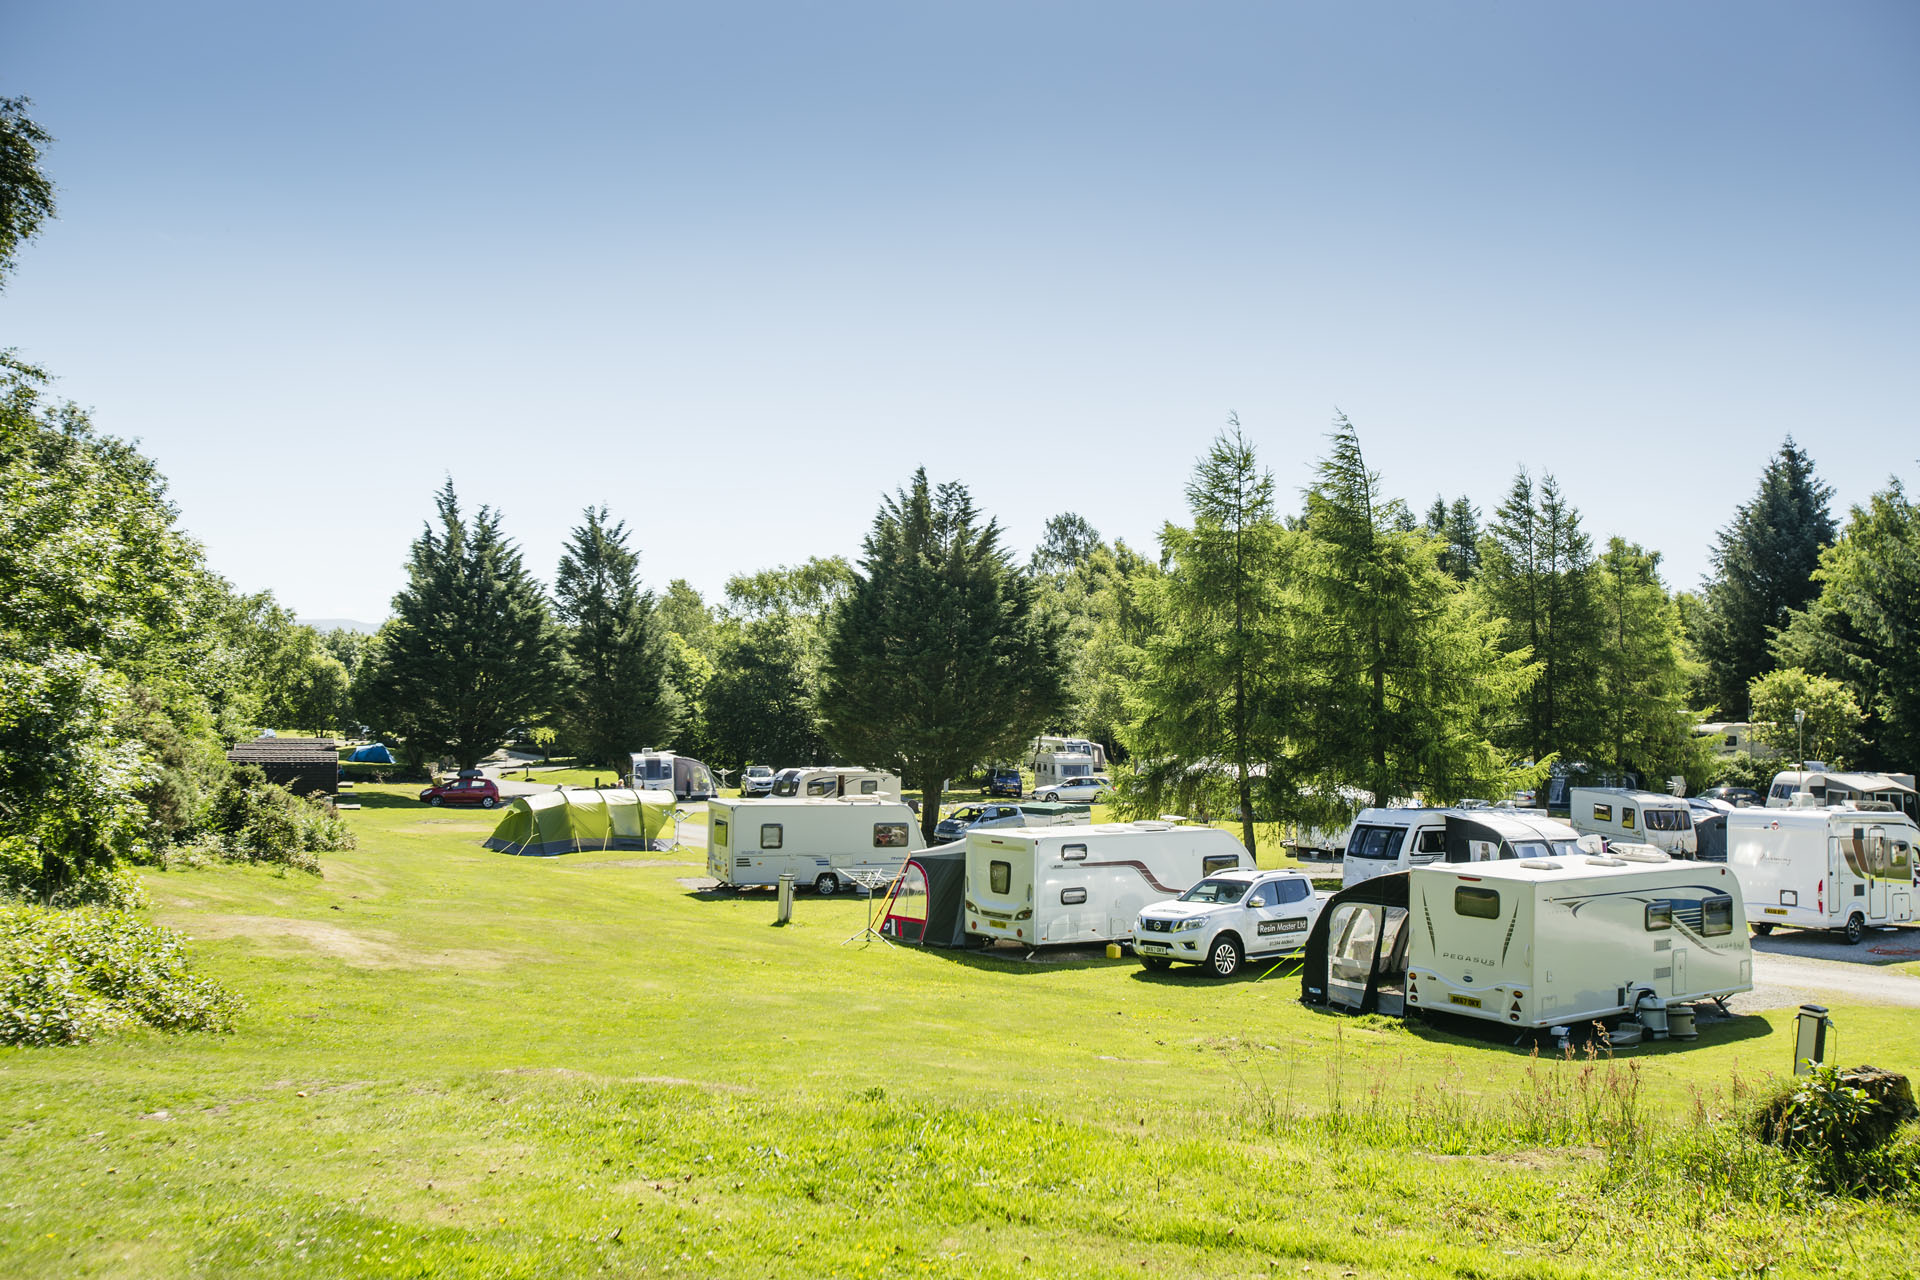 Glencoe - Camping and Caravanning Club Site - The Camping